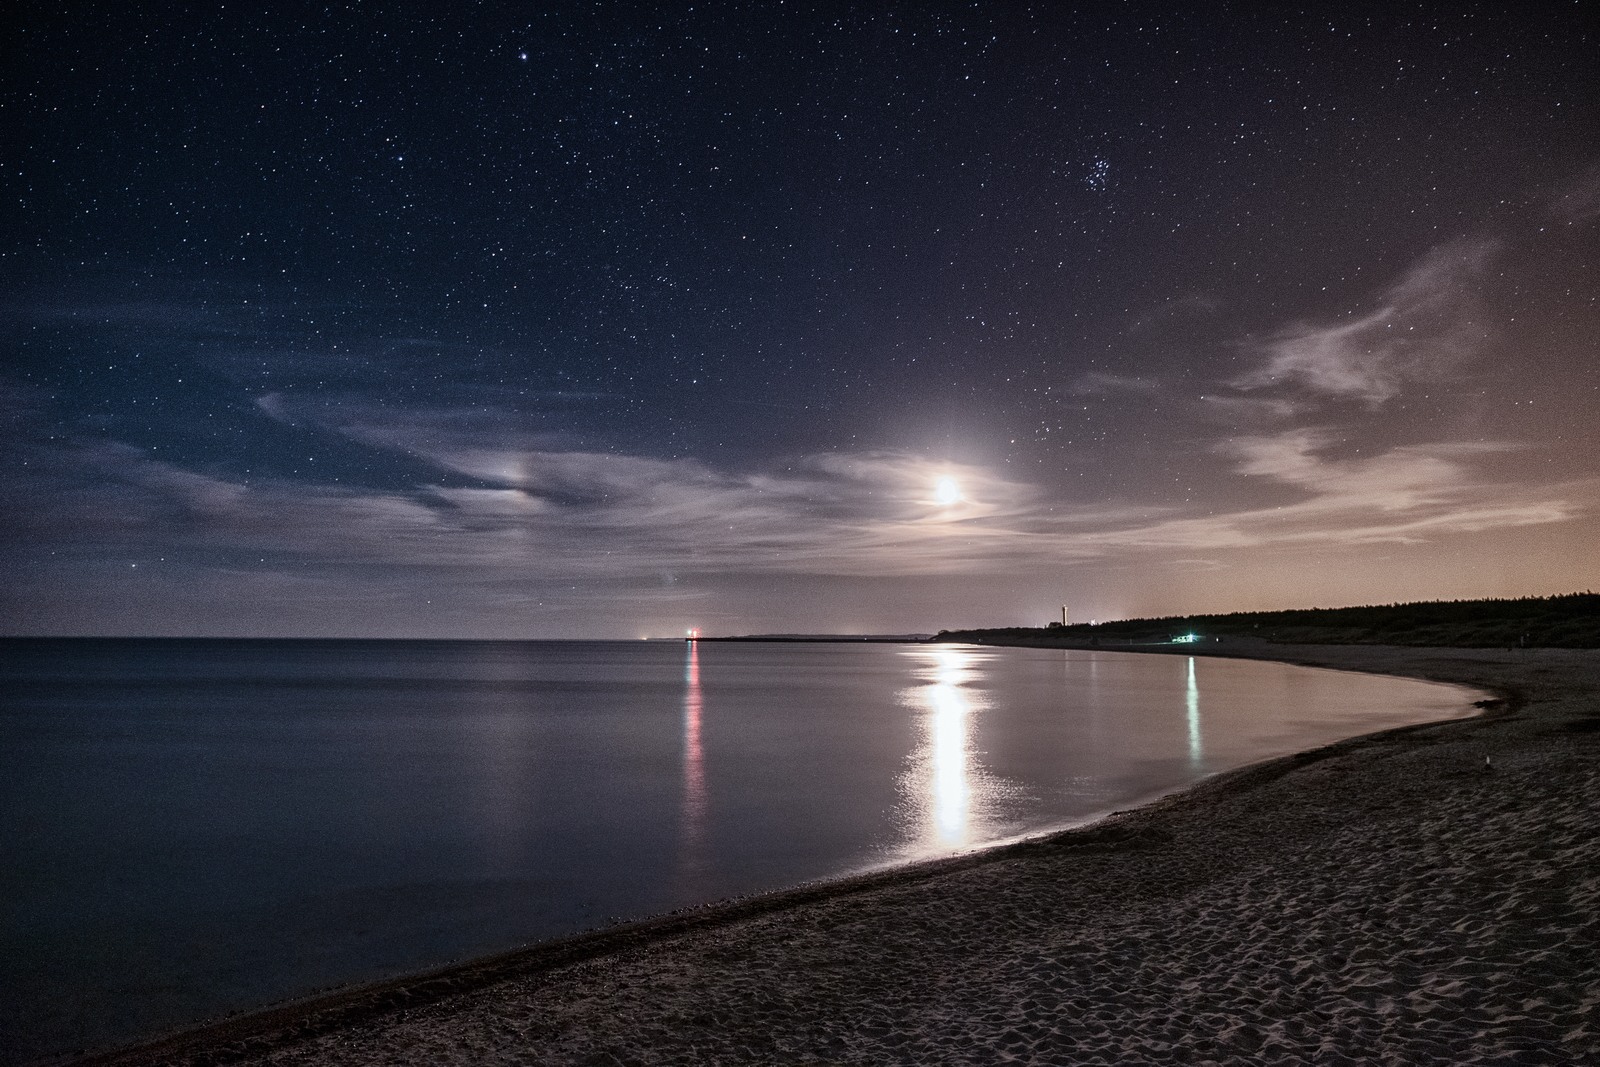 Moonrise on the beach in Ustka, PL Fuji XPro-2, XF 17-55, 15s, f2.8, ISO 1600